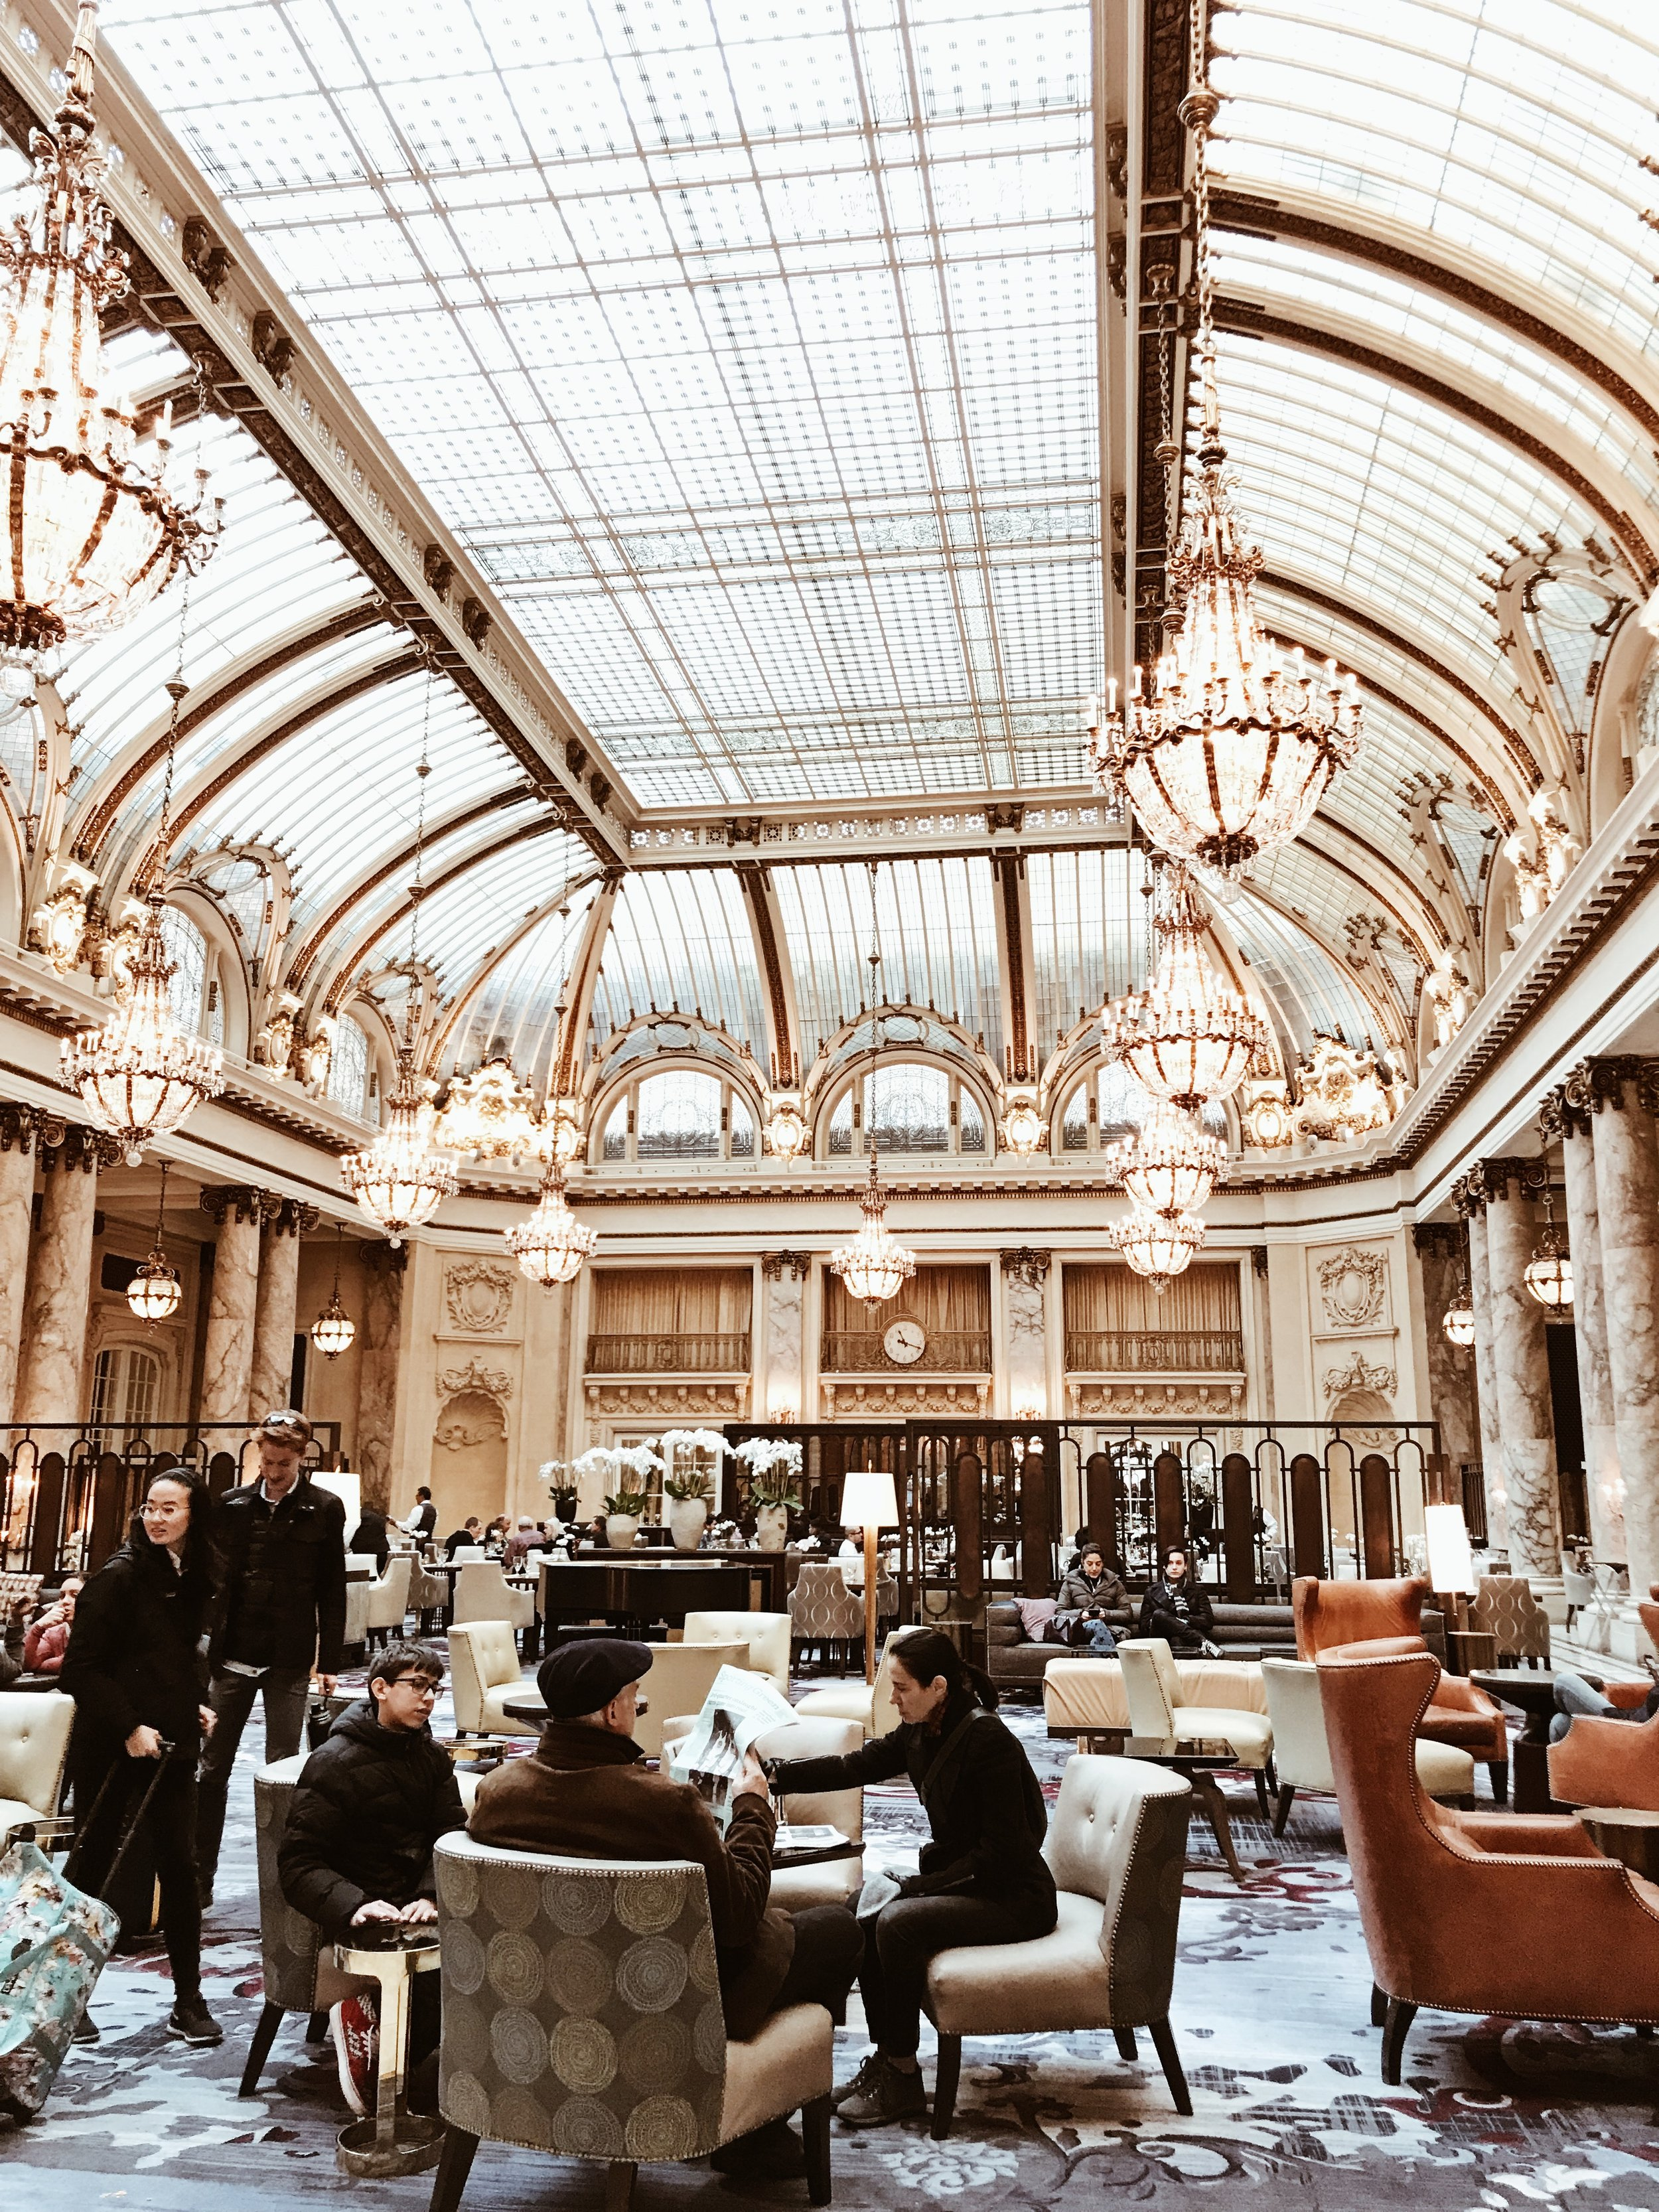 The hotel lobby at The Palace Hotel